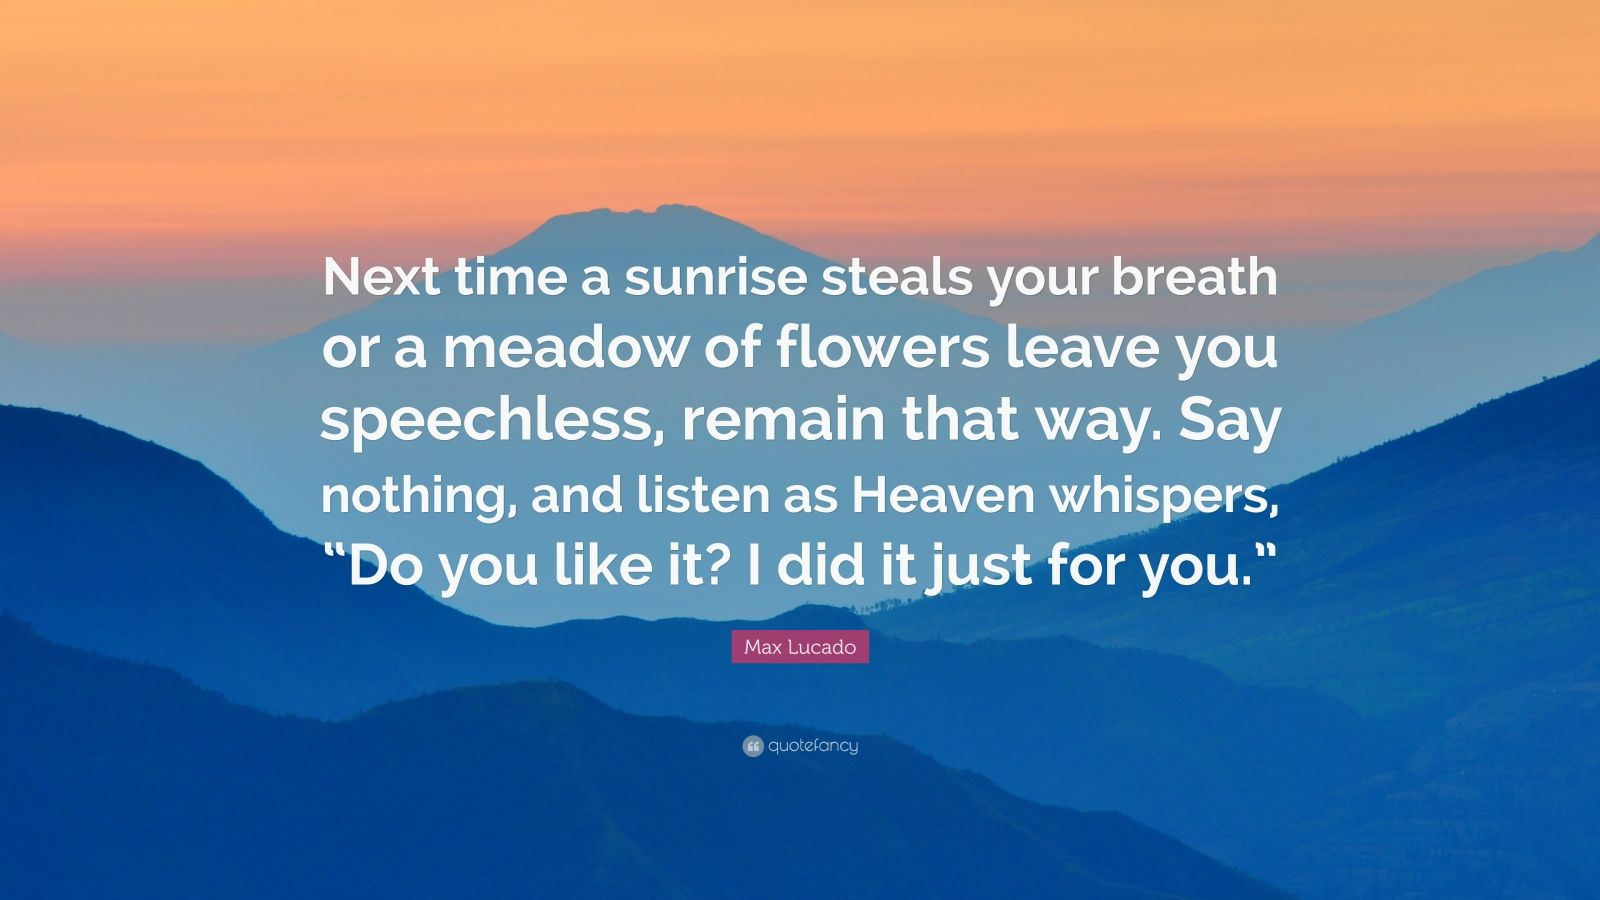 """Max Lucado Quote: """"Next time a sunrise steals your breath or a meadow of flowers leave you speechless, remain that way. Say nothing, and listen as Heaven whispers, """"Do you like it? I did it just for you."""""""""""